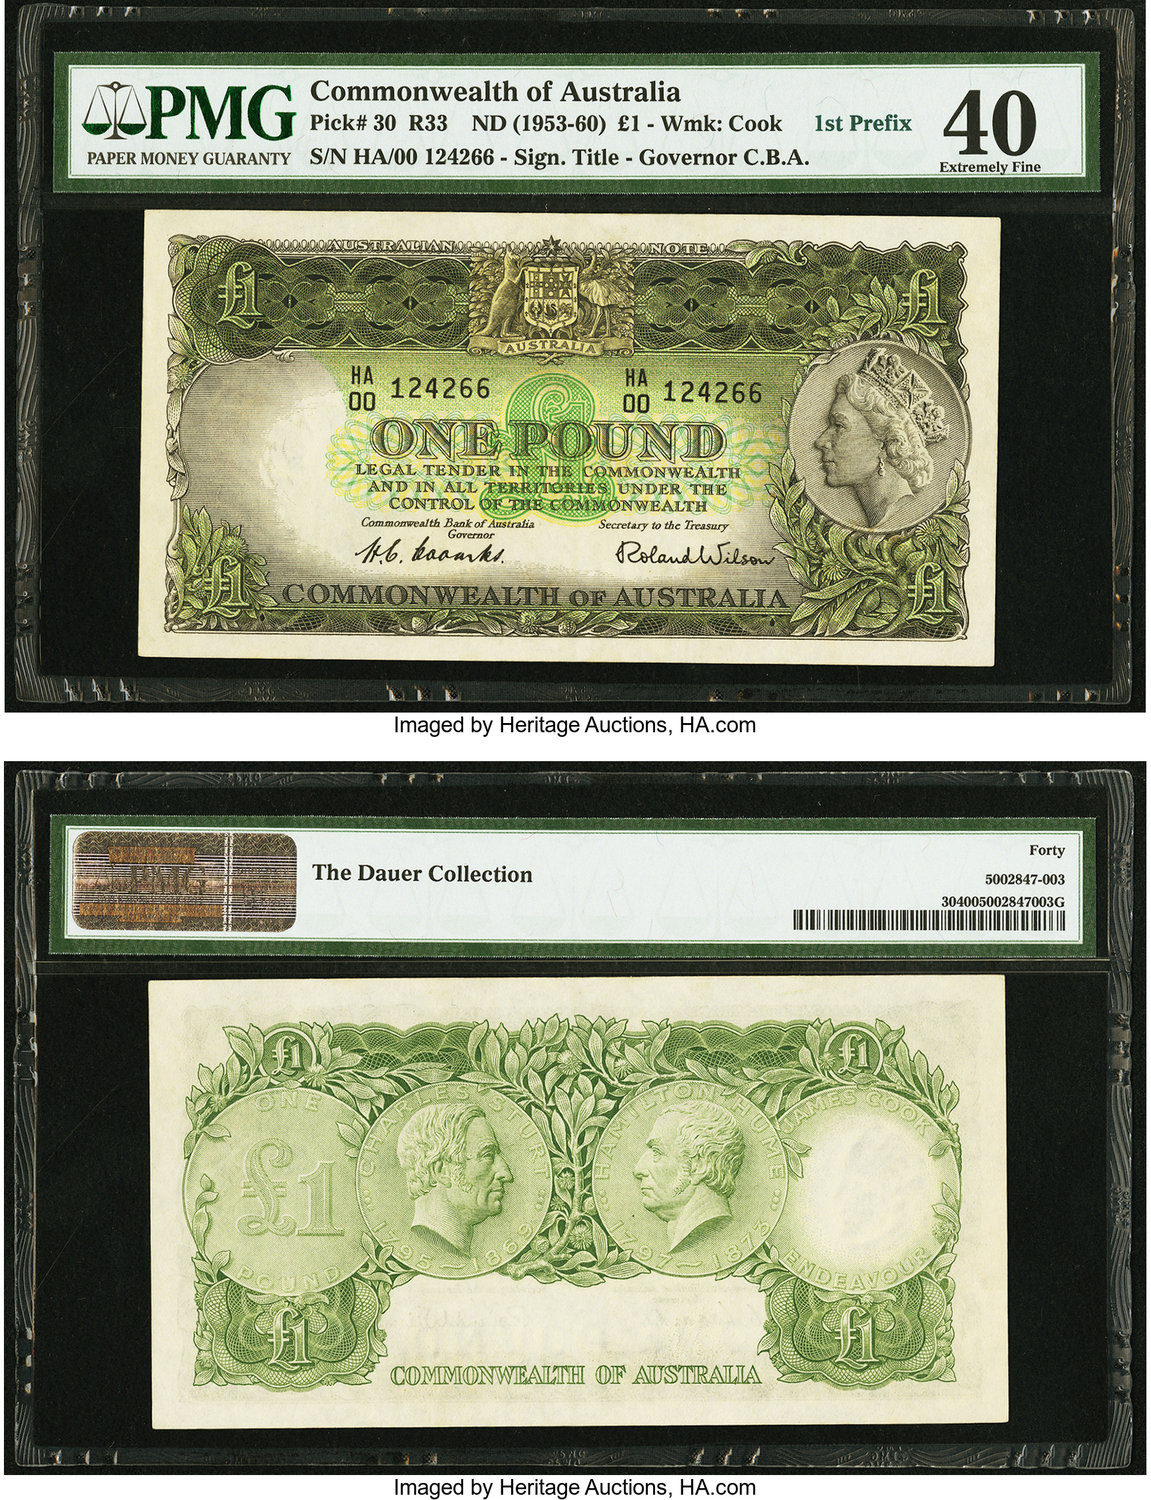 World Currency Australia Commonwealth Of 1 Nd 1953 60 Pick 30 R33 The First Prefix Ha00 Is Seen On This